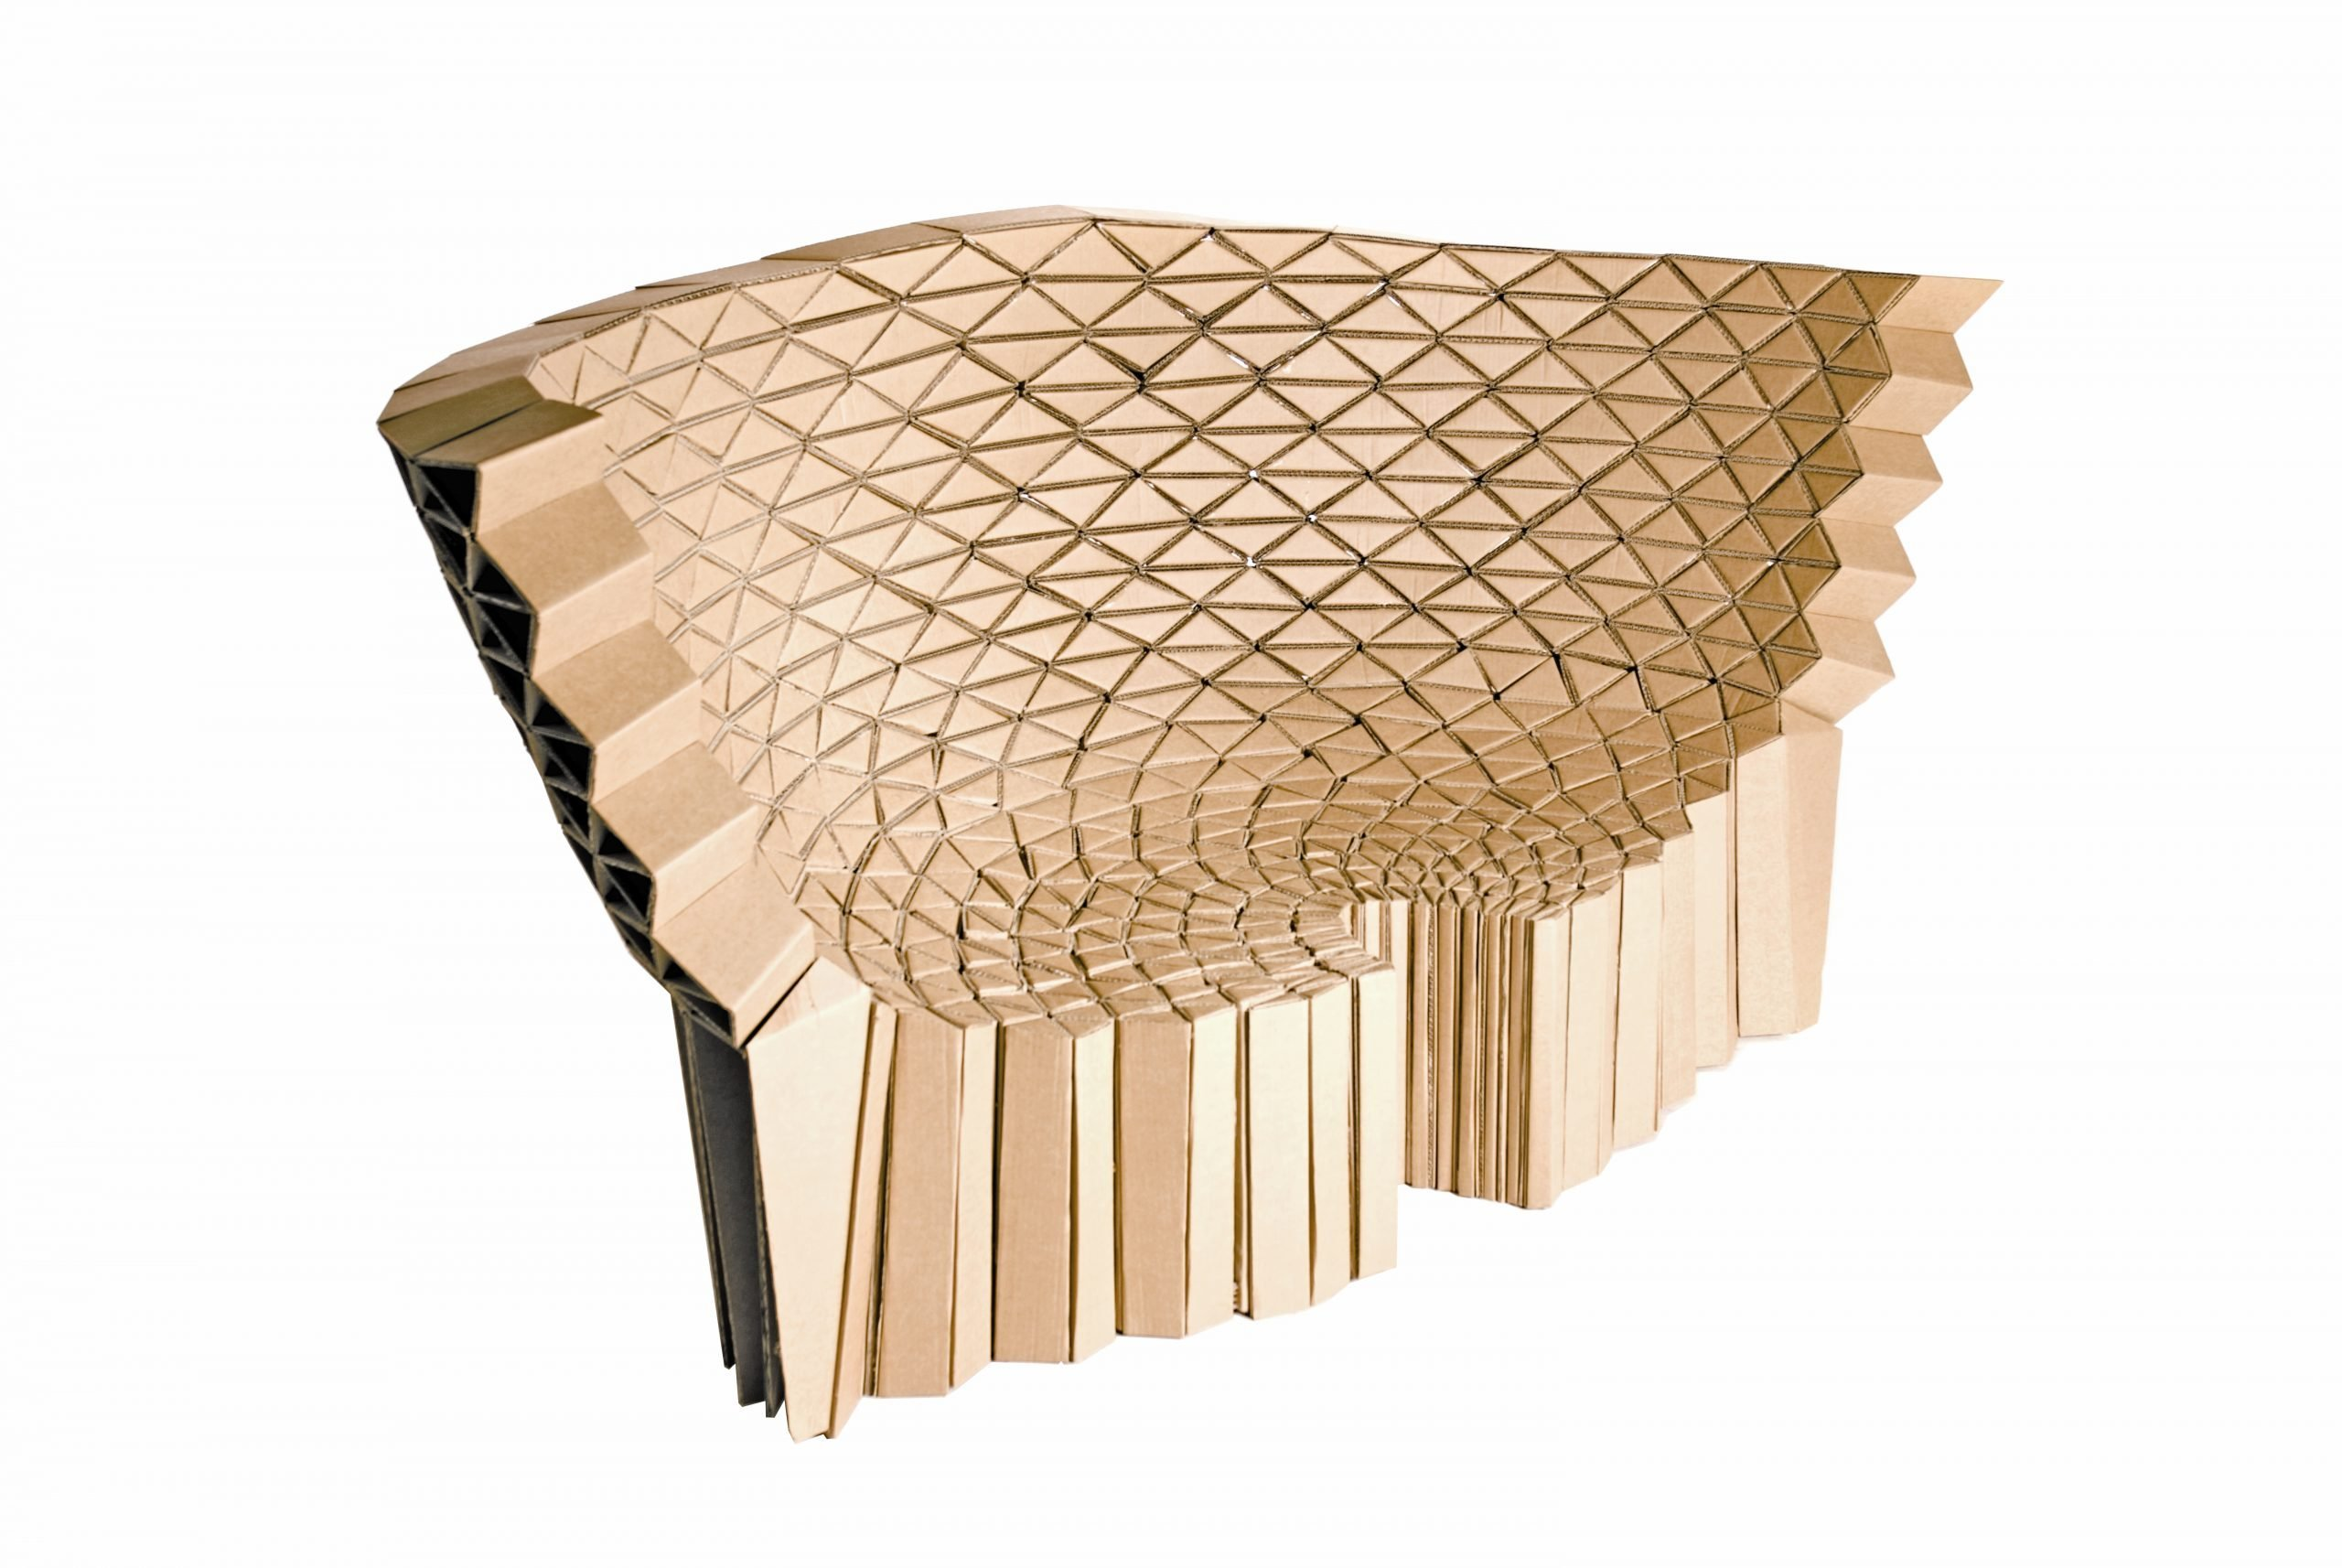 A creative artistic cardboard furniture design of a sofa created using thousands of triangular components all individually cut and glued together. The sofa is from design studio Lazerian and part of the honeycomb collection.